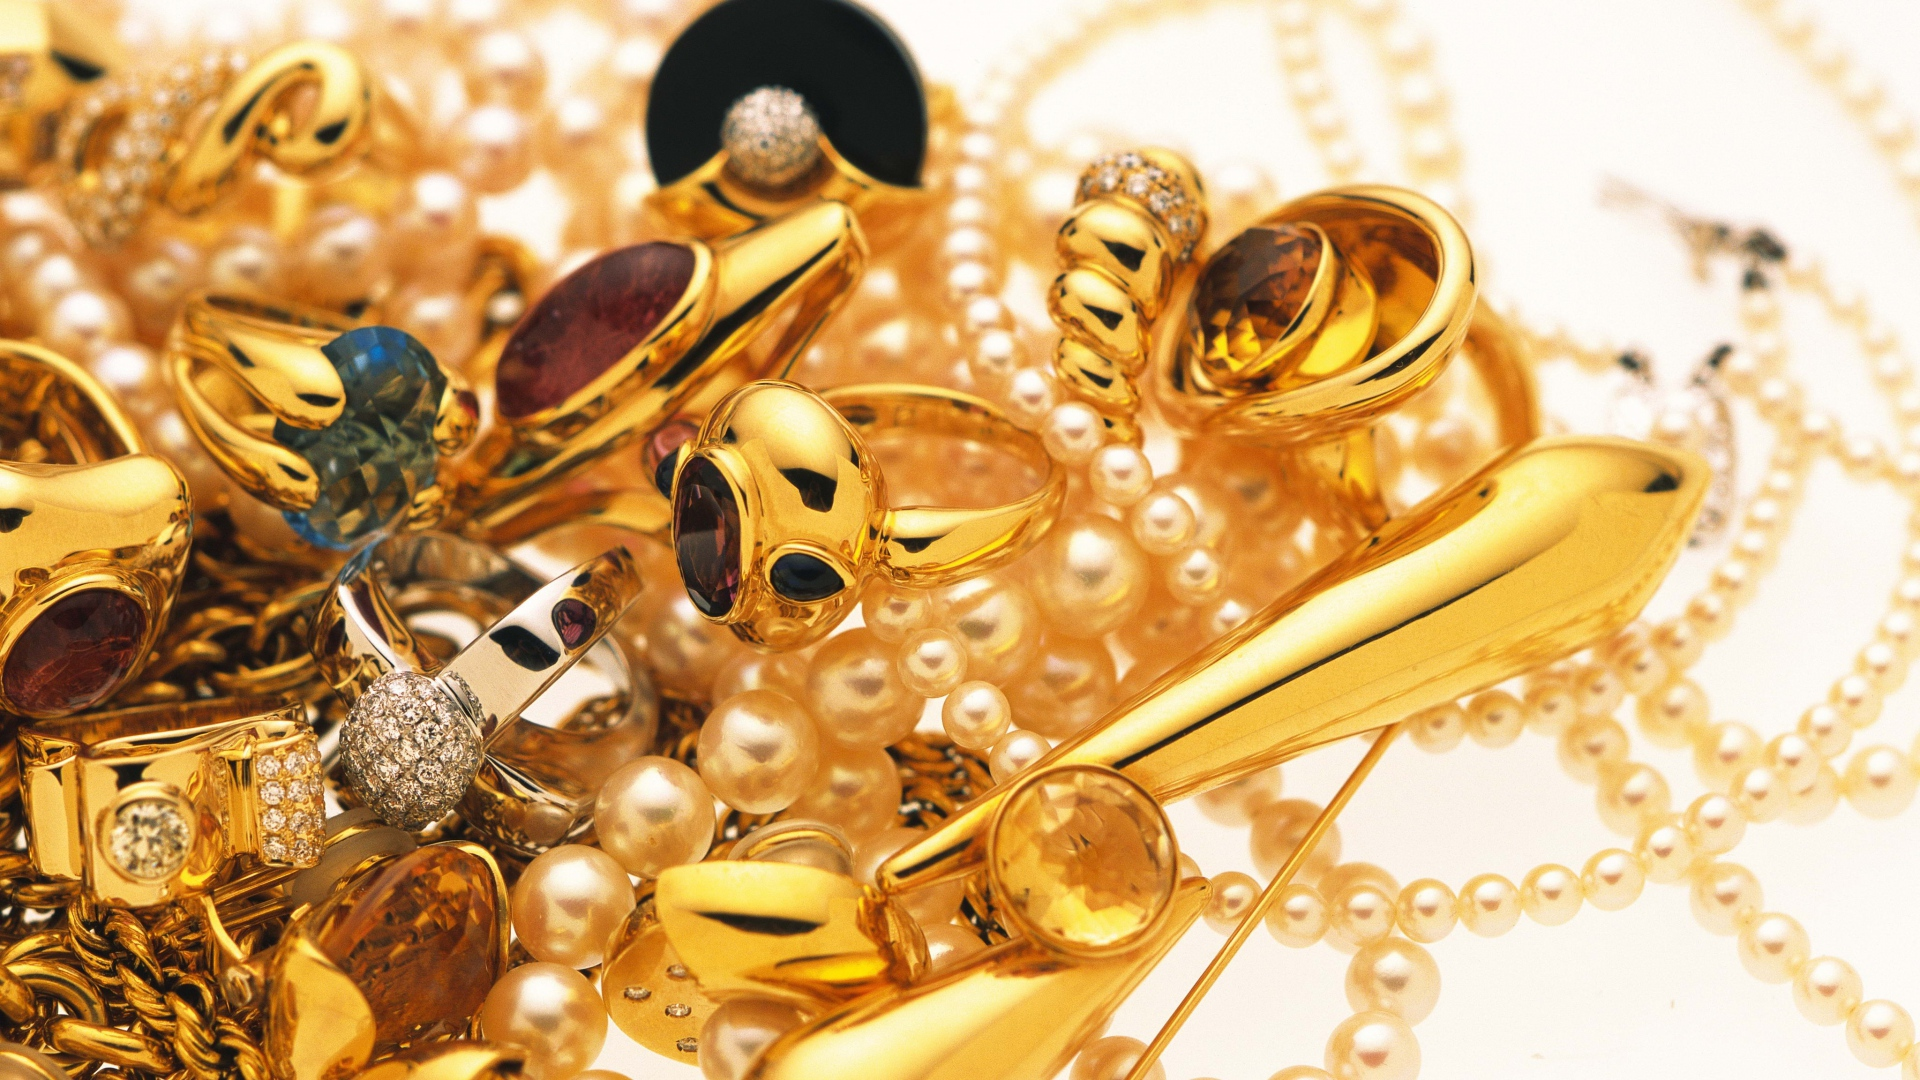 Gold Jewellery HD Wallpapers - THIS Wallpaper